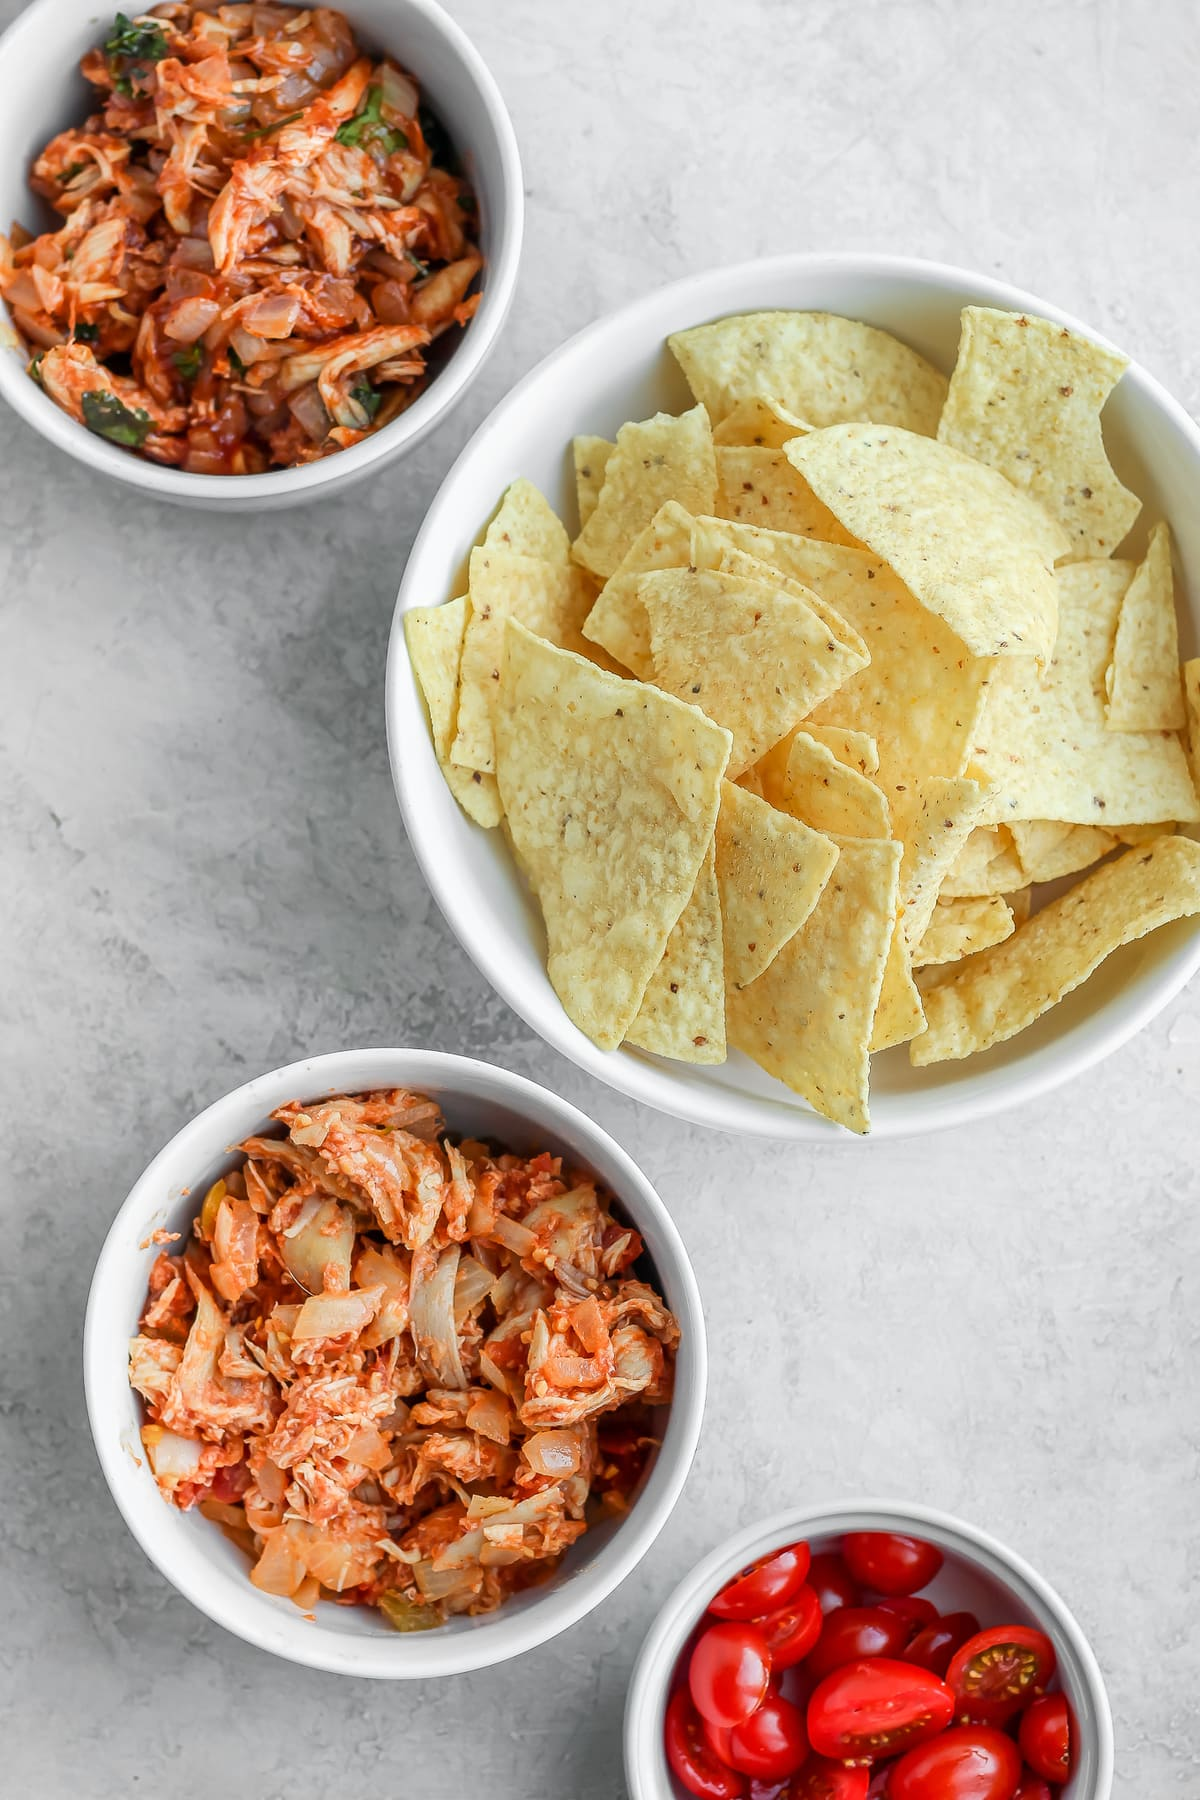 bowls filled with chips and shredded chicken